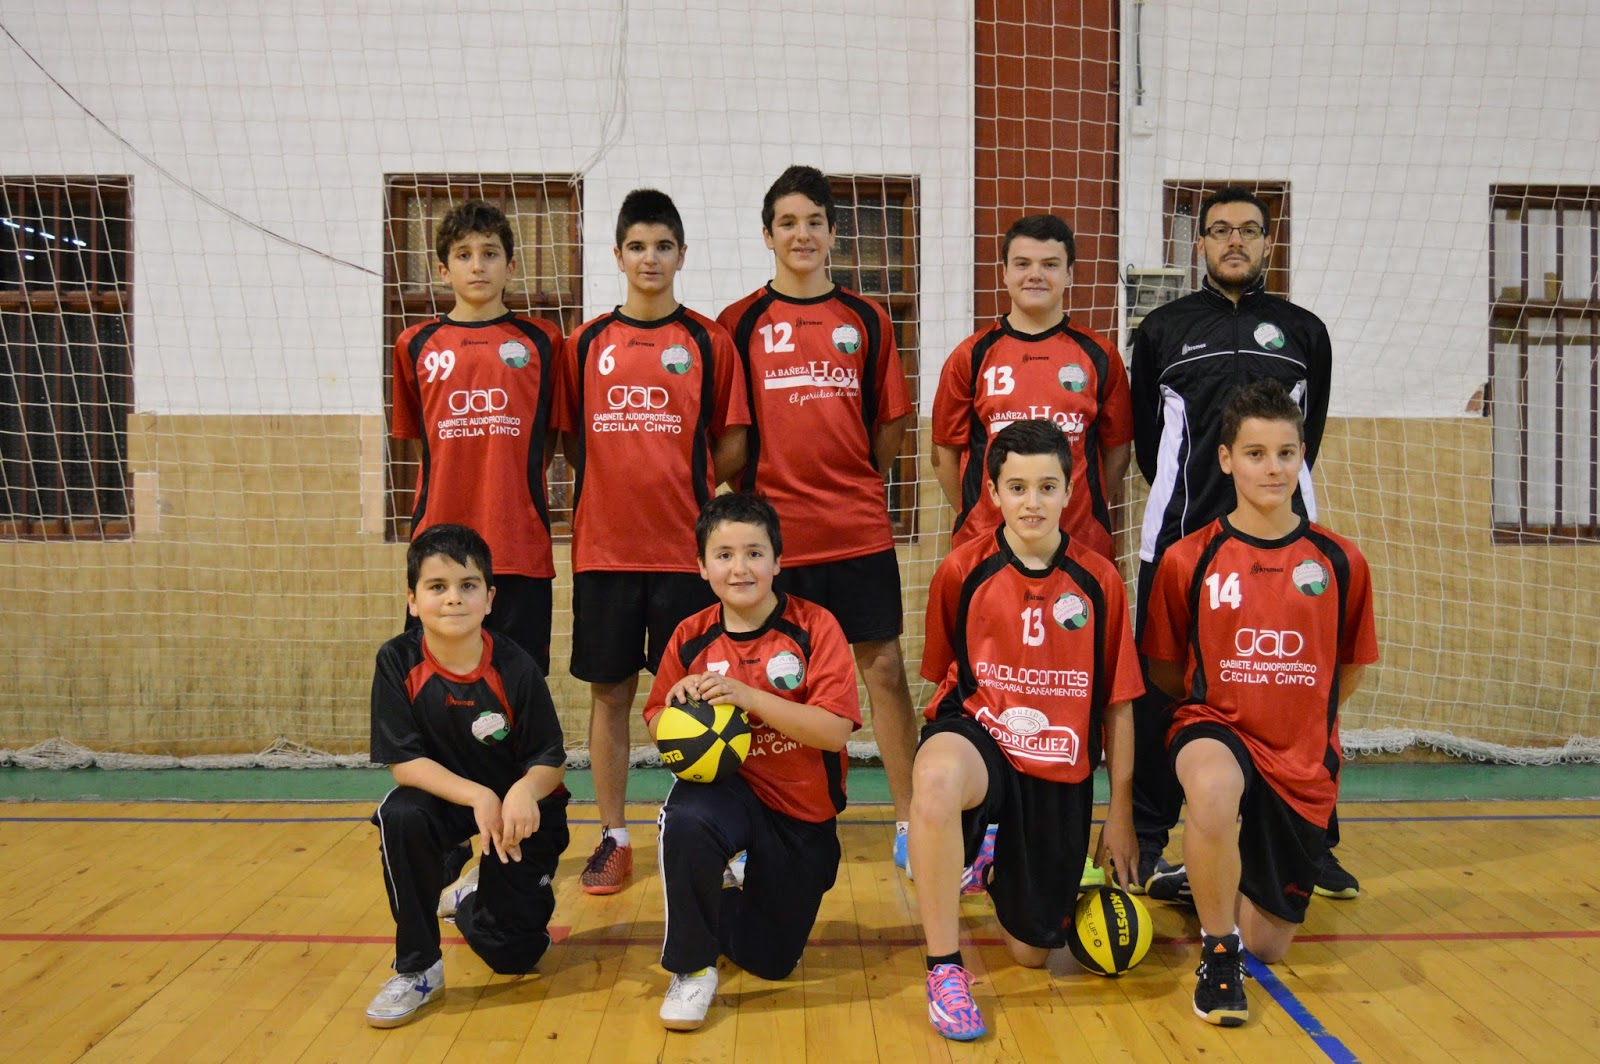 http://www.cdabb.es/images/balonmano/balonmano-1.JPG